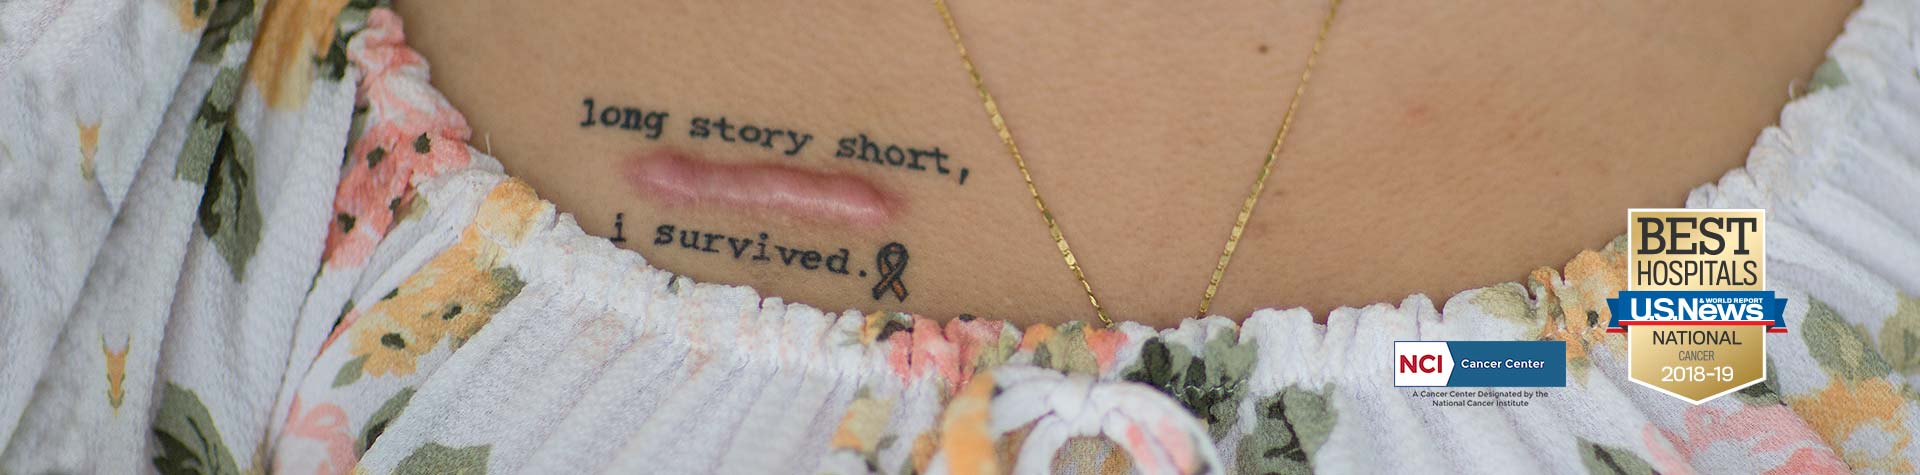 "Woman with scar on breast and tatto that reads, ""Long Story Short I survived"""